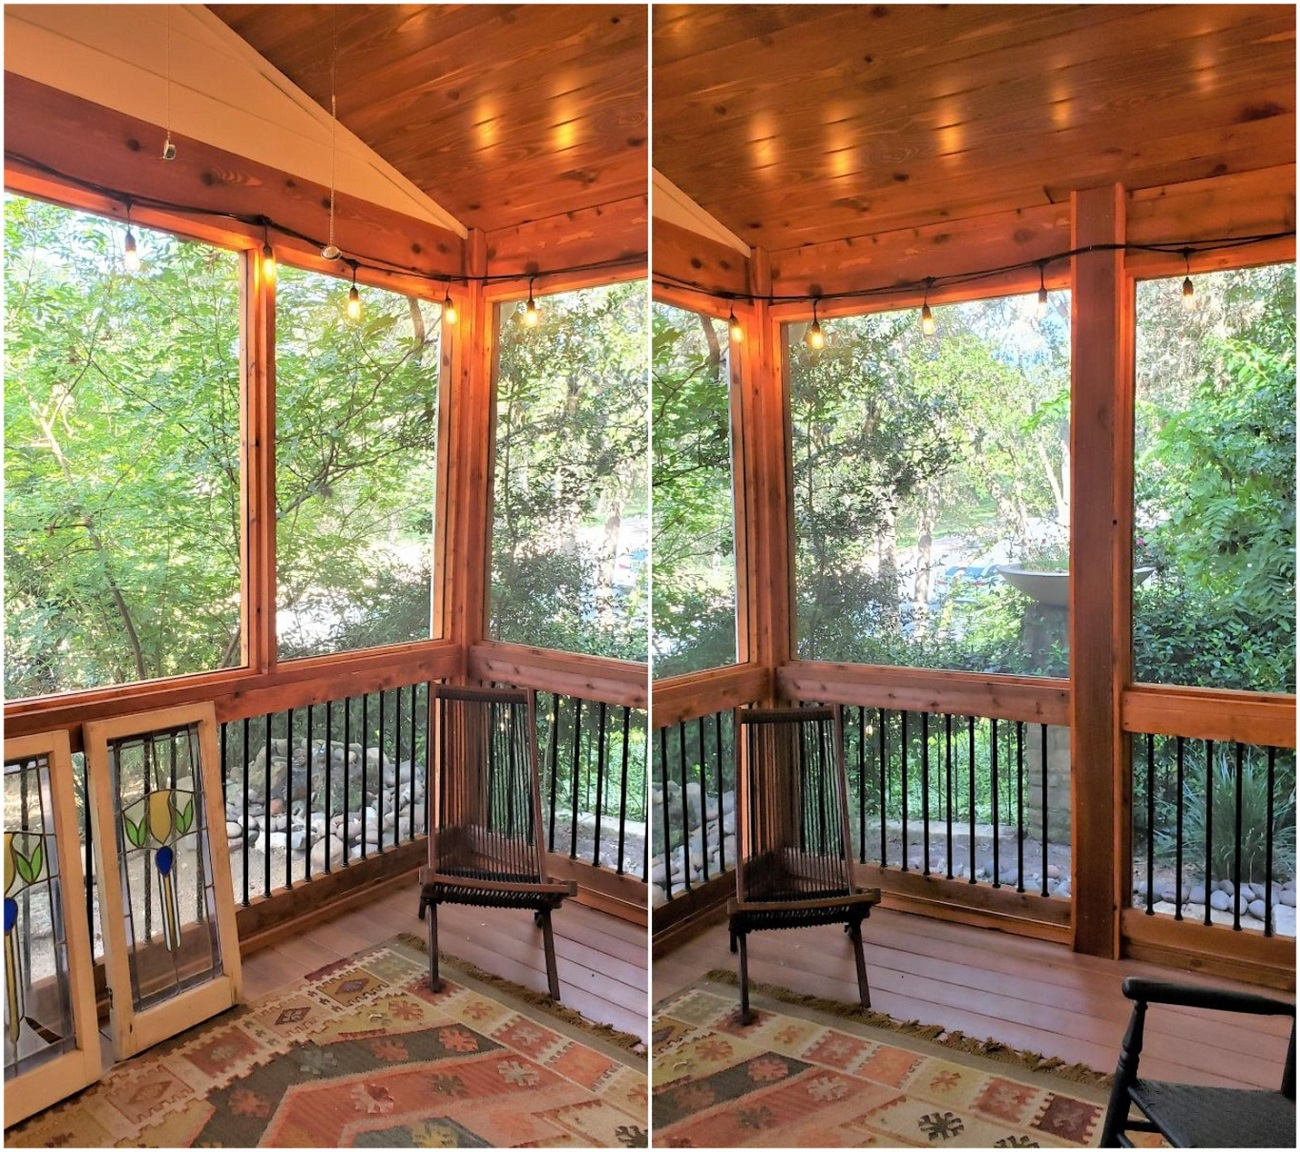 New-screened-porch-interior-view